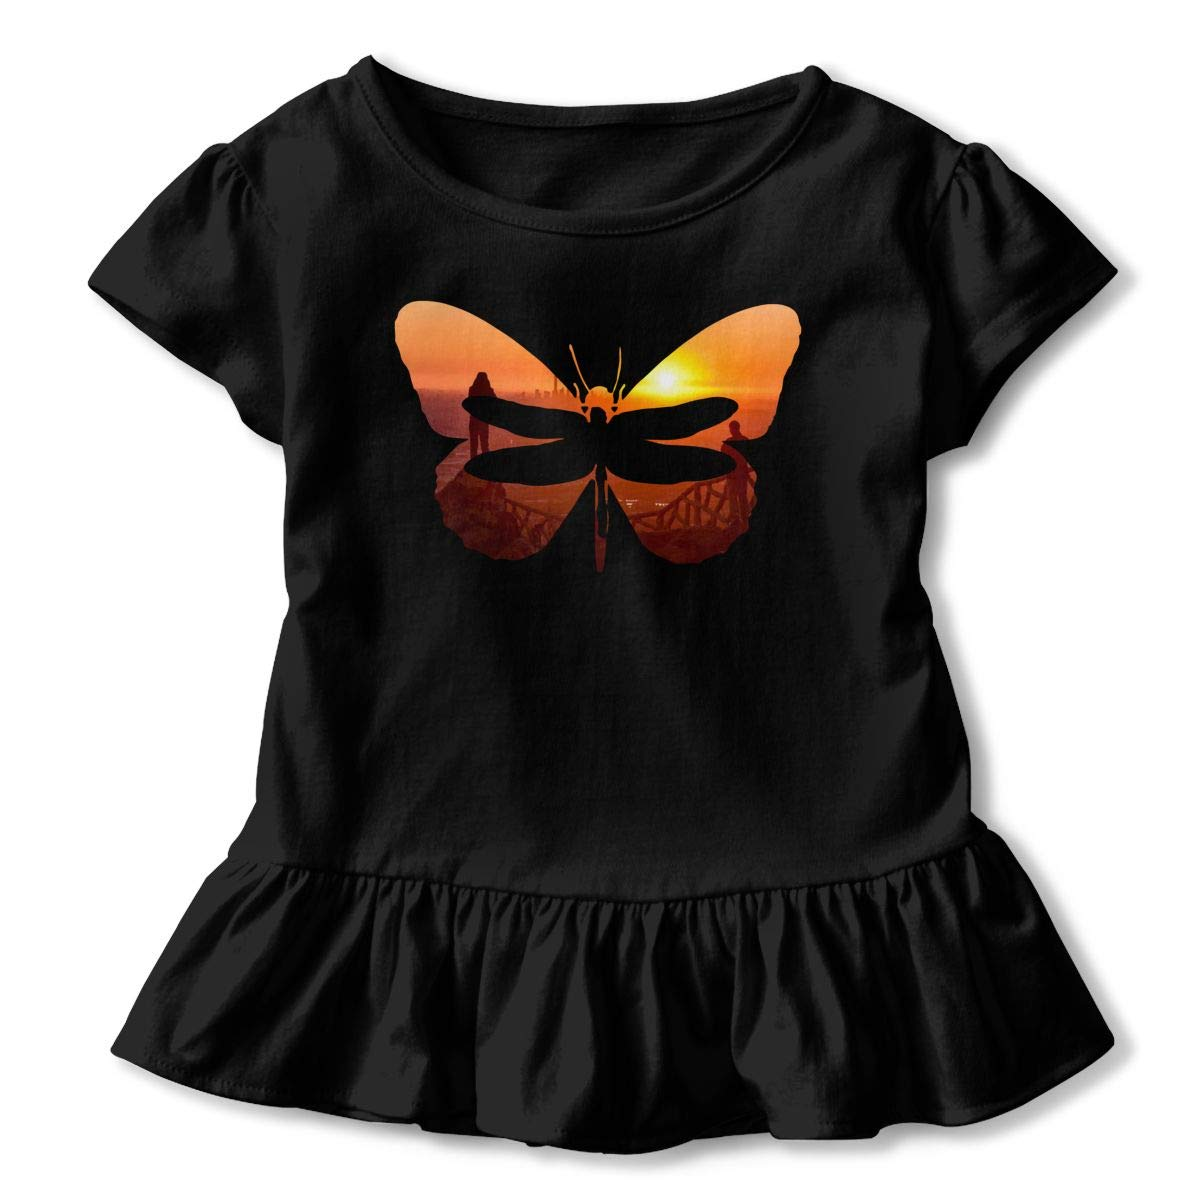 Dragonfly Butterfly Sunrise Toddler Baby Girls Short Sleeve Ruffle T-Shirt